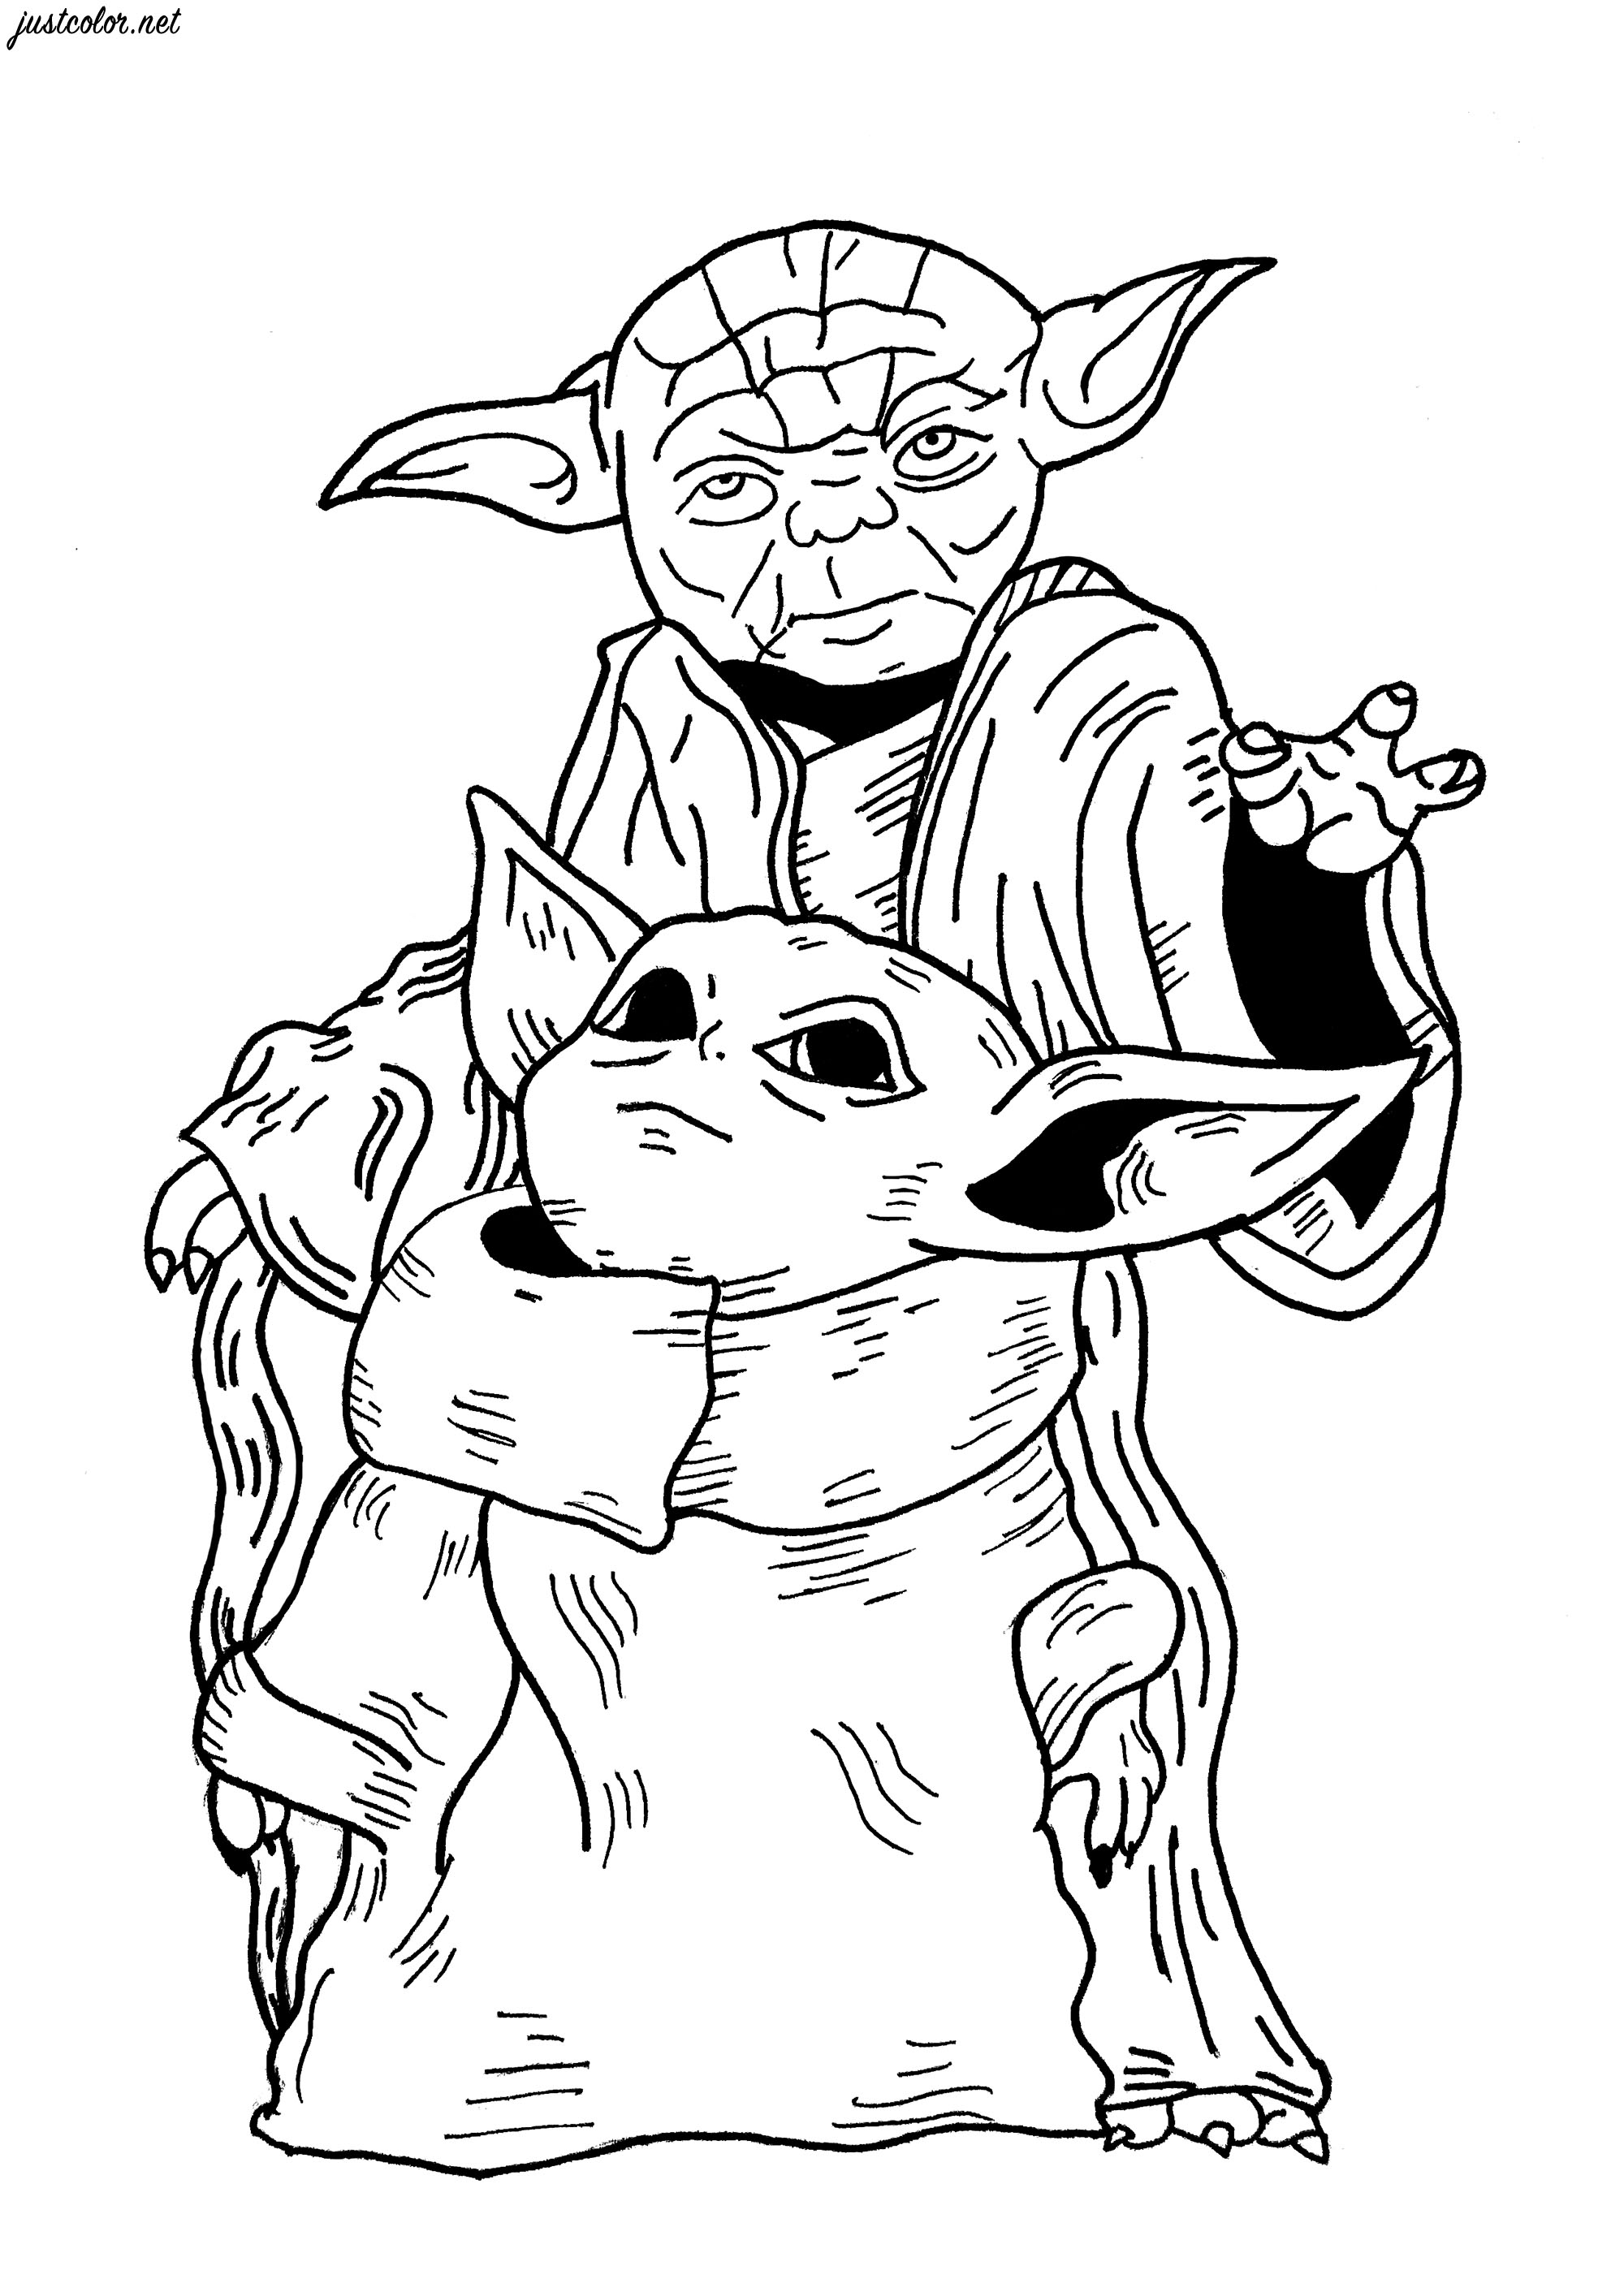 An original Star Wars fan-art coloring page with Baby Yoda (from The Mandalorian - Star Wars / Disney +) and the famous Yoda